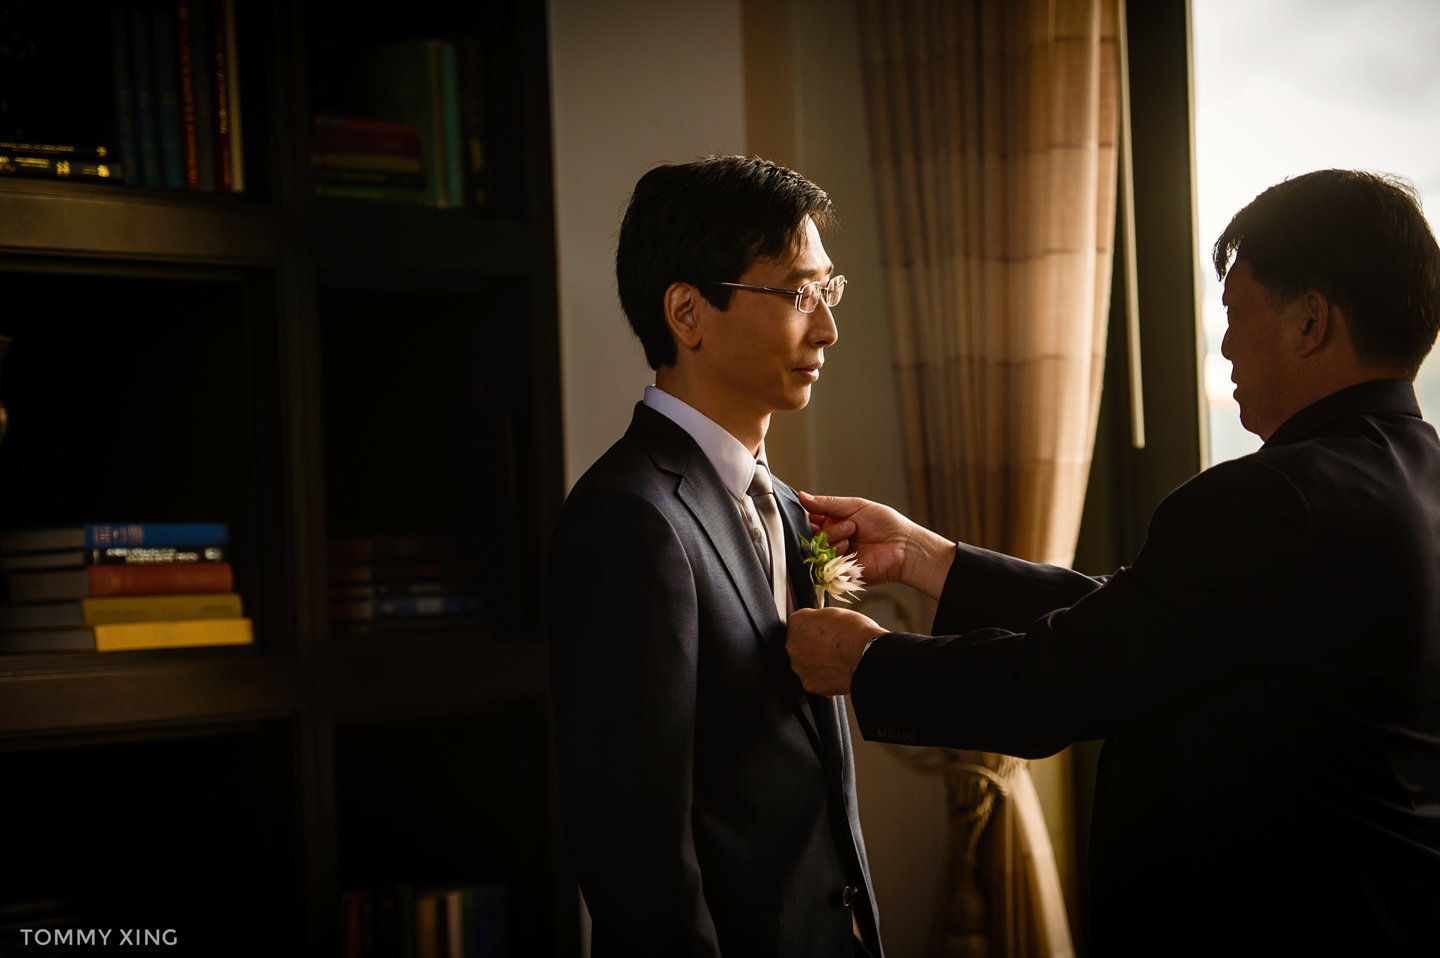 San Francisco Wedding Photography Valley Presbyterian Church WEDDING Tommy Xing Photography 洛杉矶旧金山婚礼婚纱照摄影师011.jpg